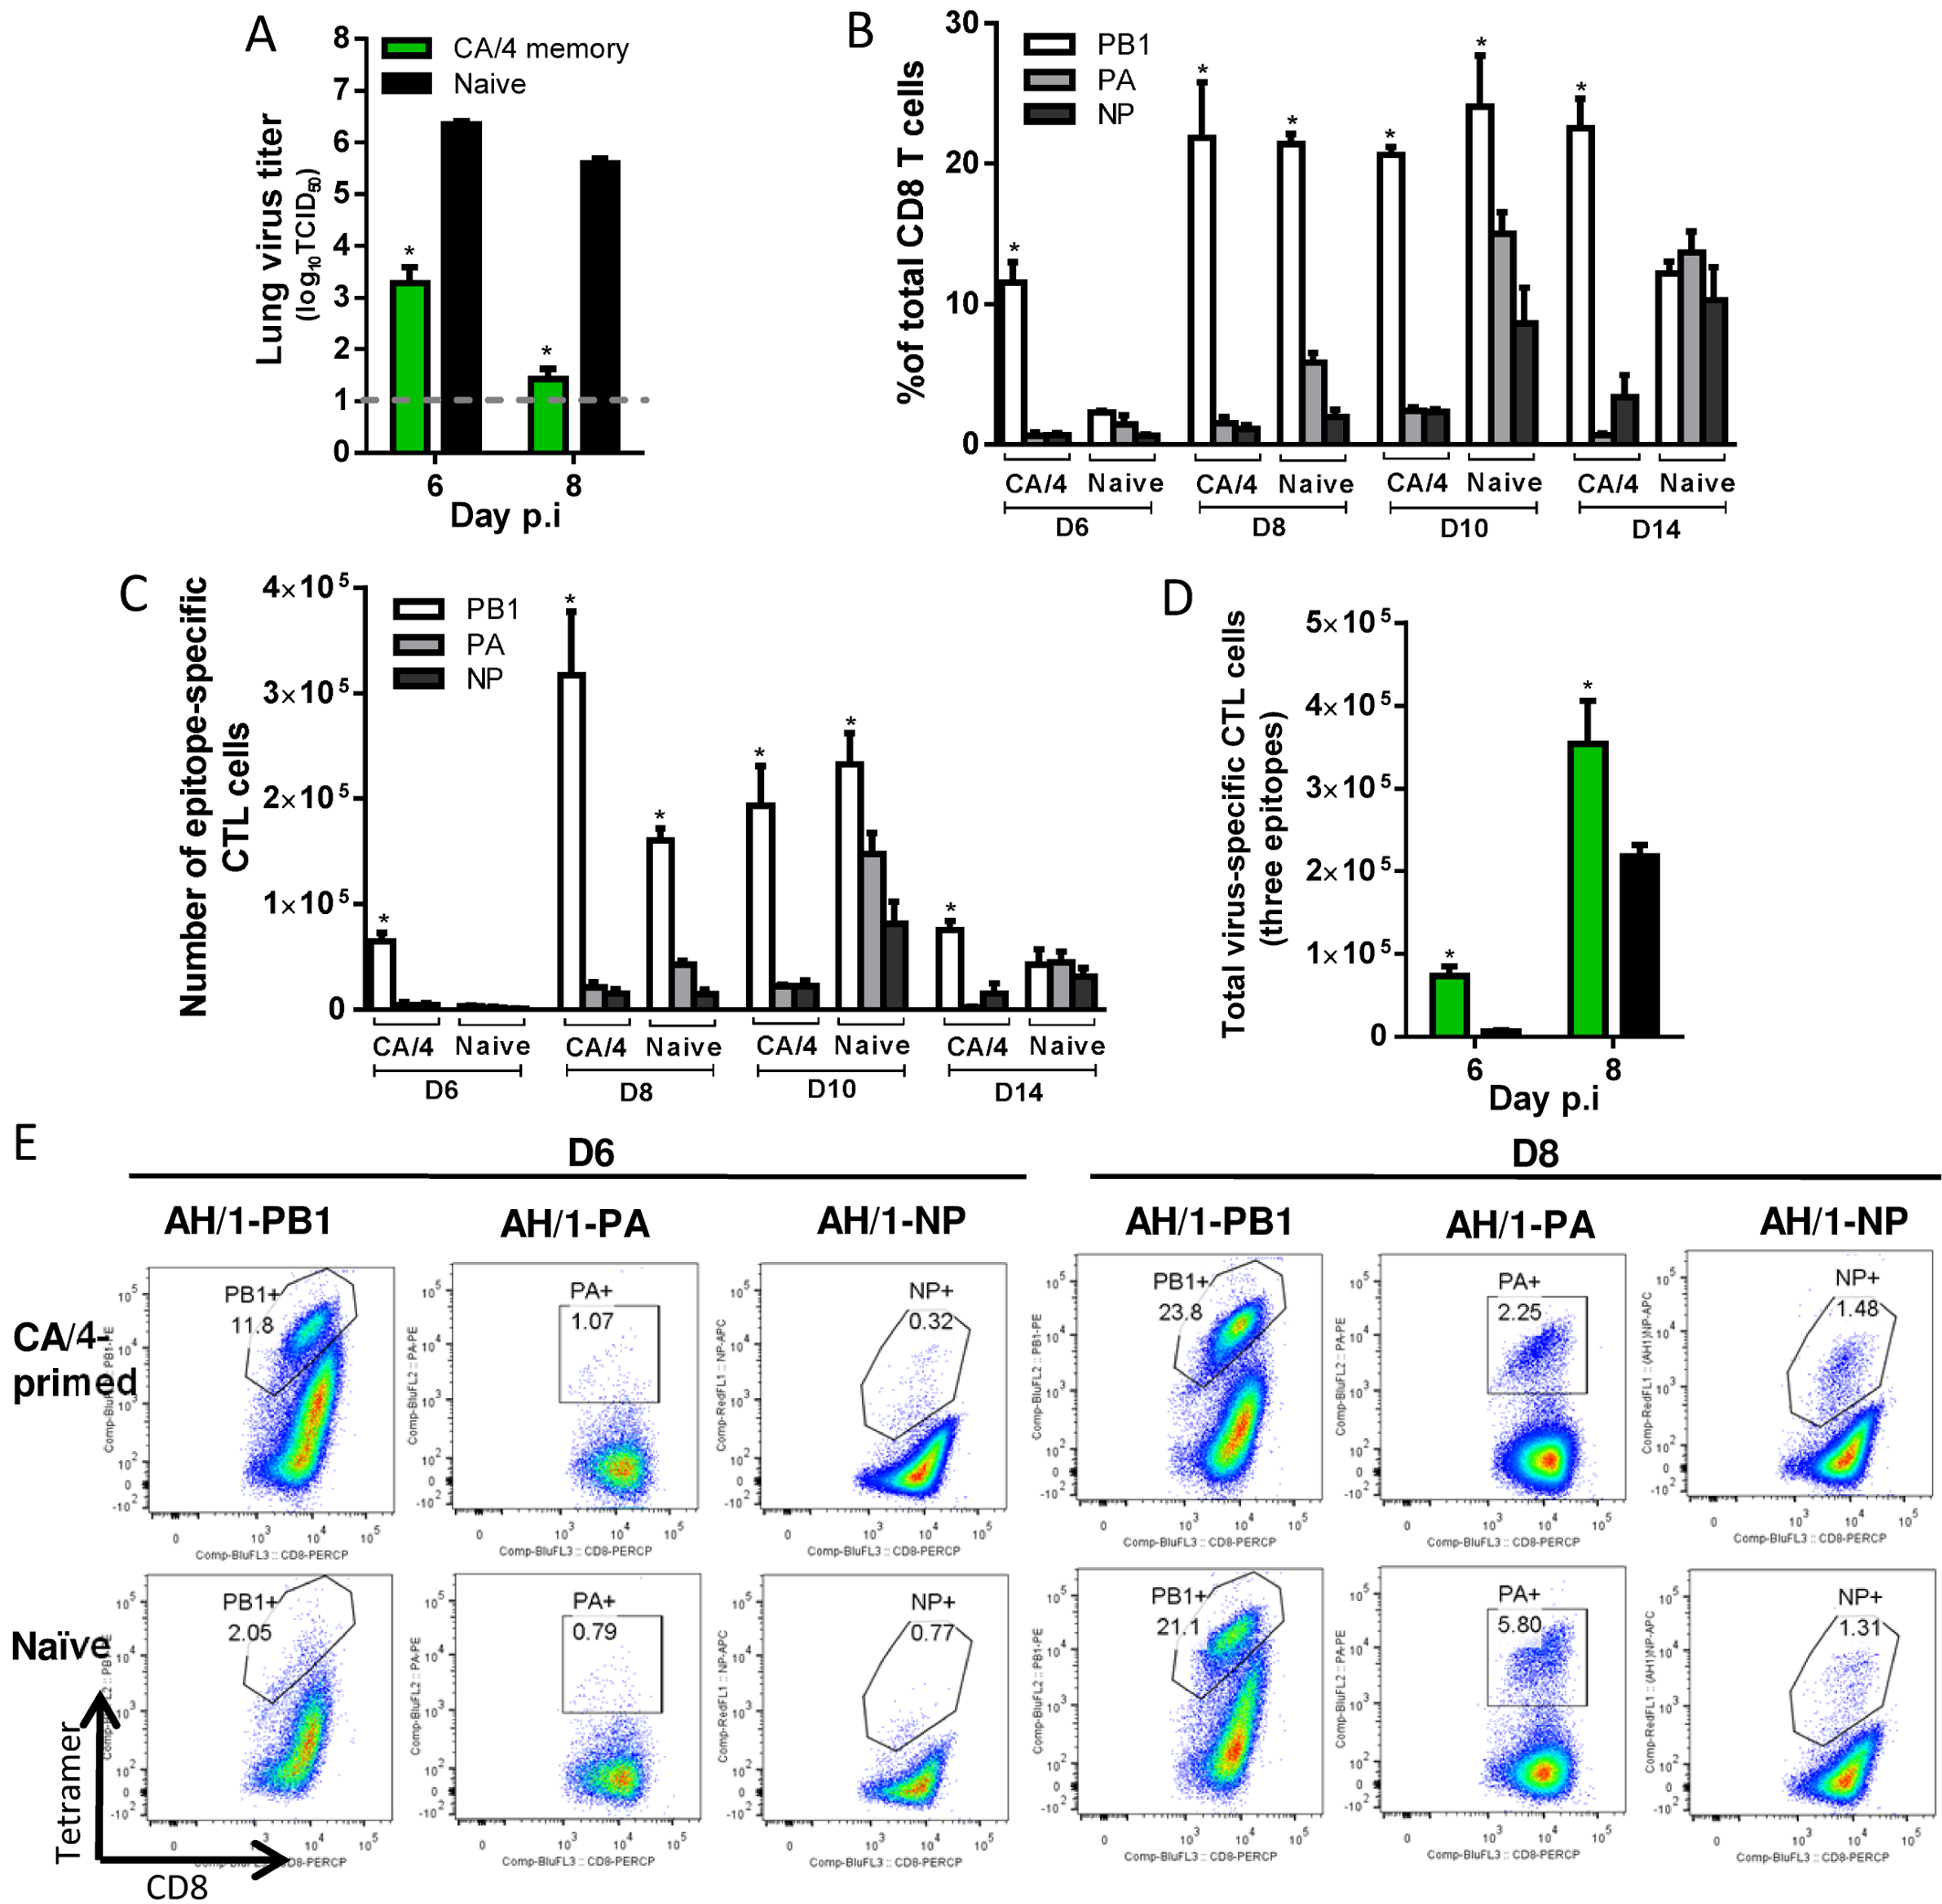 Comparing the primary and secondary CTL responses in naïve and CA/4(H1N1)-primed mice challenged with the H7N9 virus.